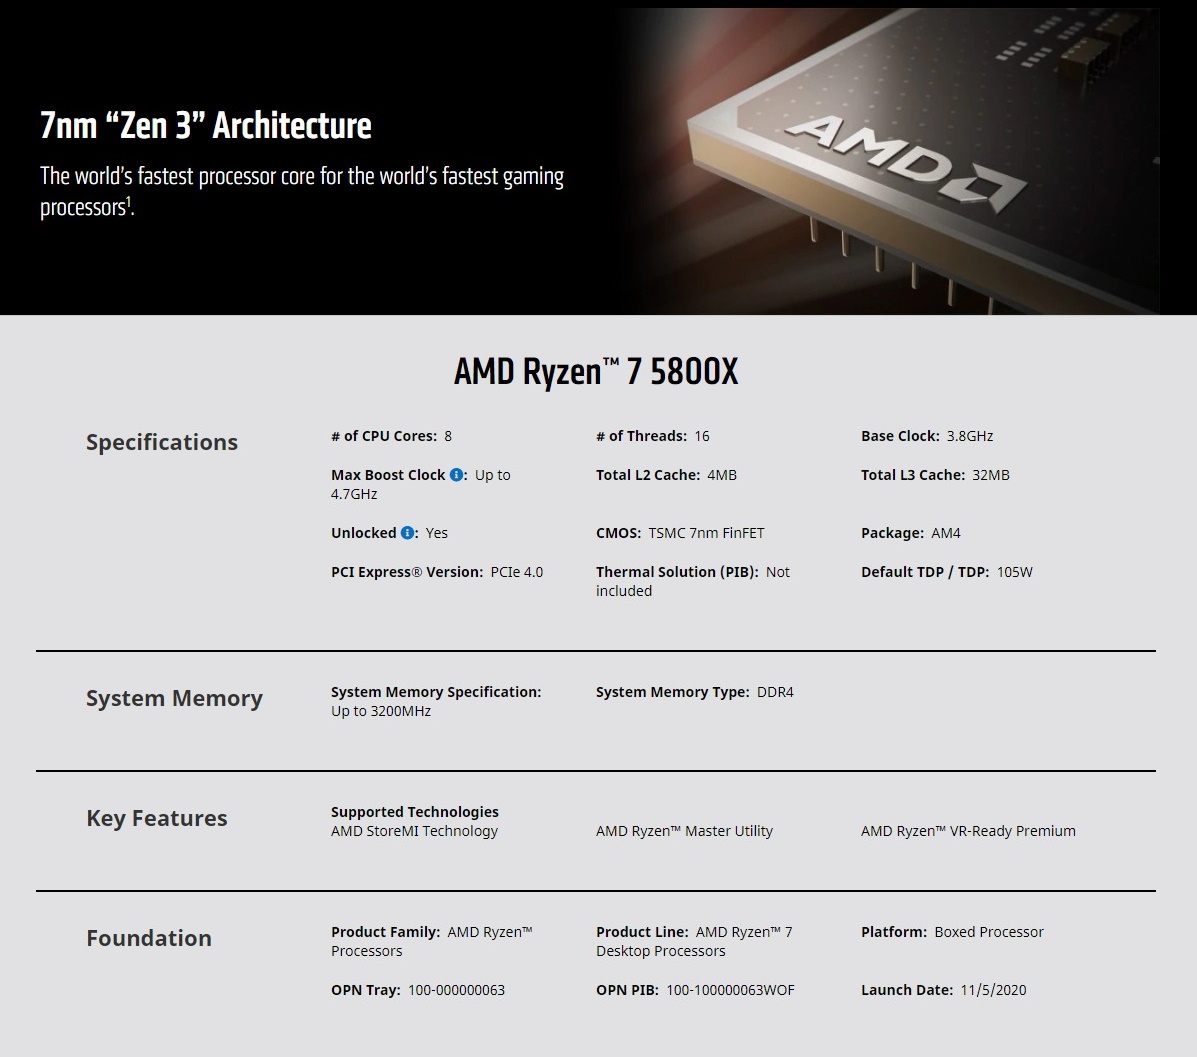 A large marketing image providing additional information about the product AMD Ryzen 7 5800X 3.8Ghz 8 Core 16 Thread AM4 - No HSF Retail Box - Additional alt info not provided